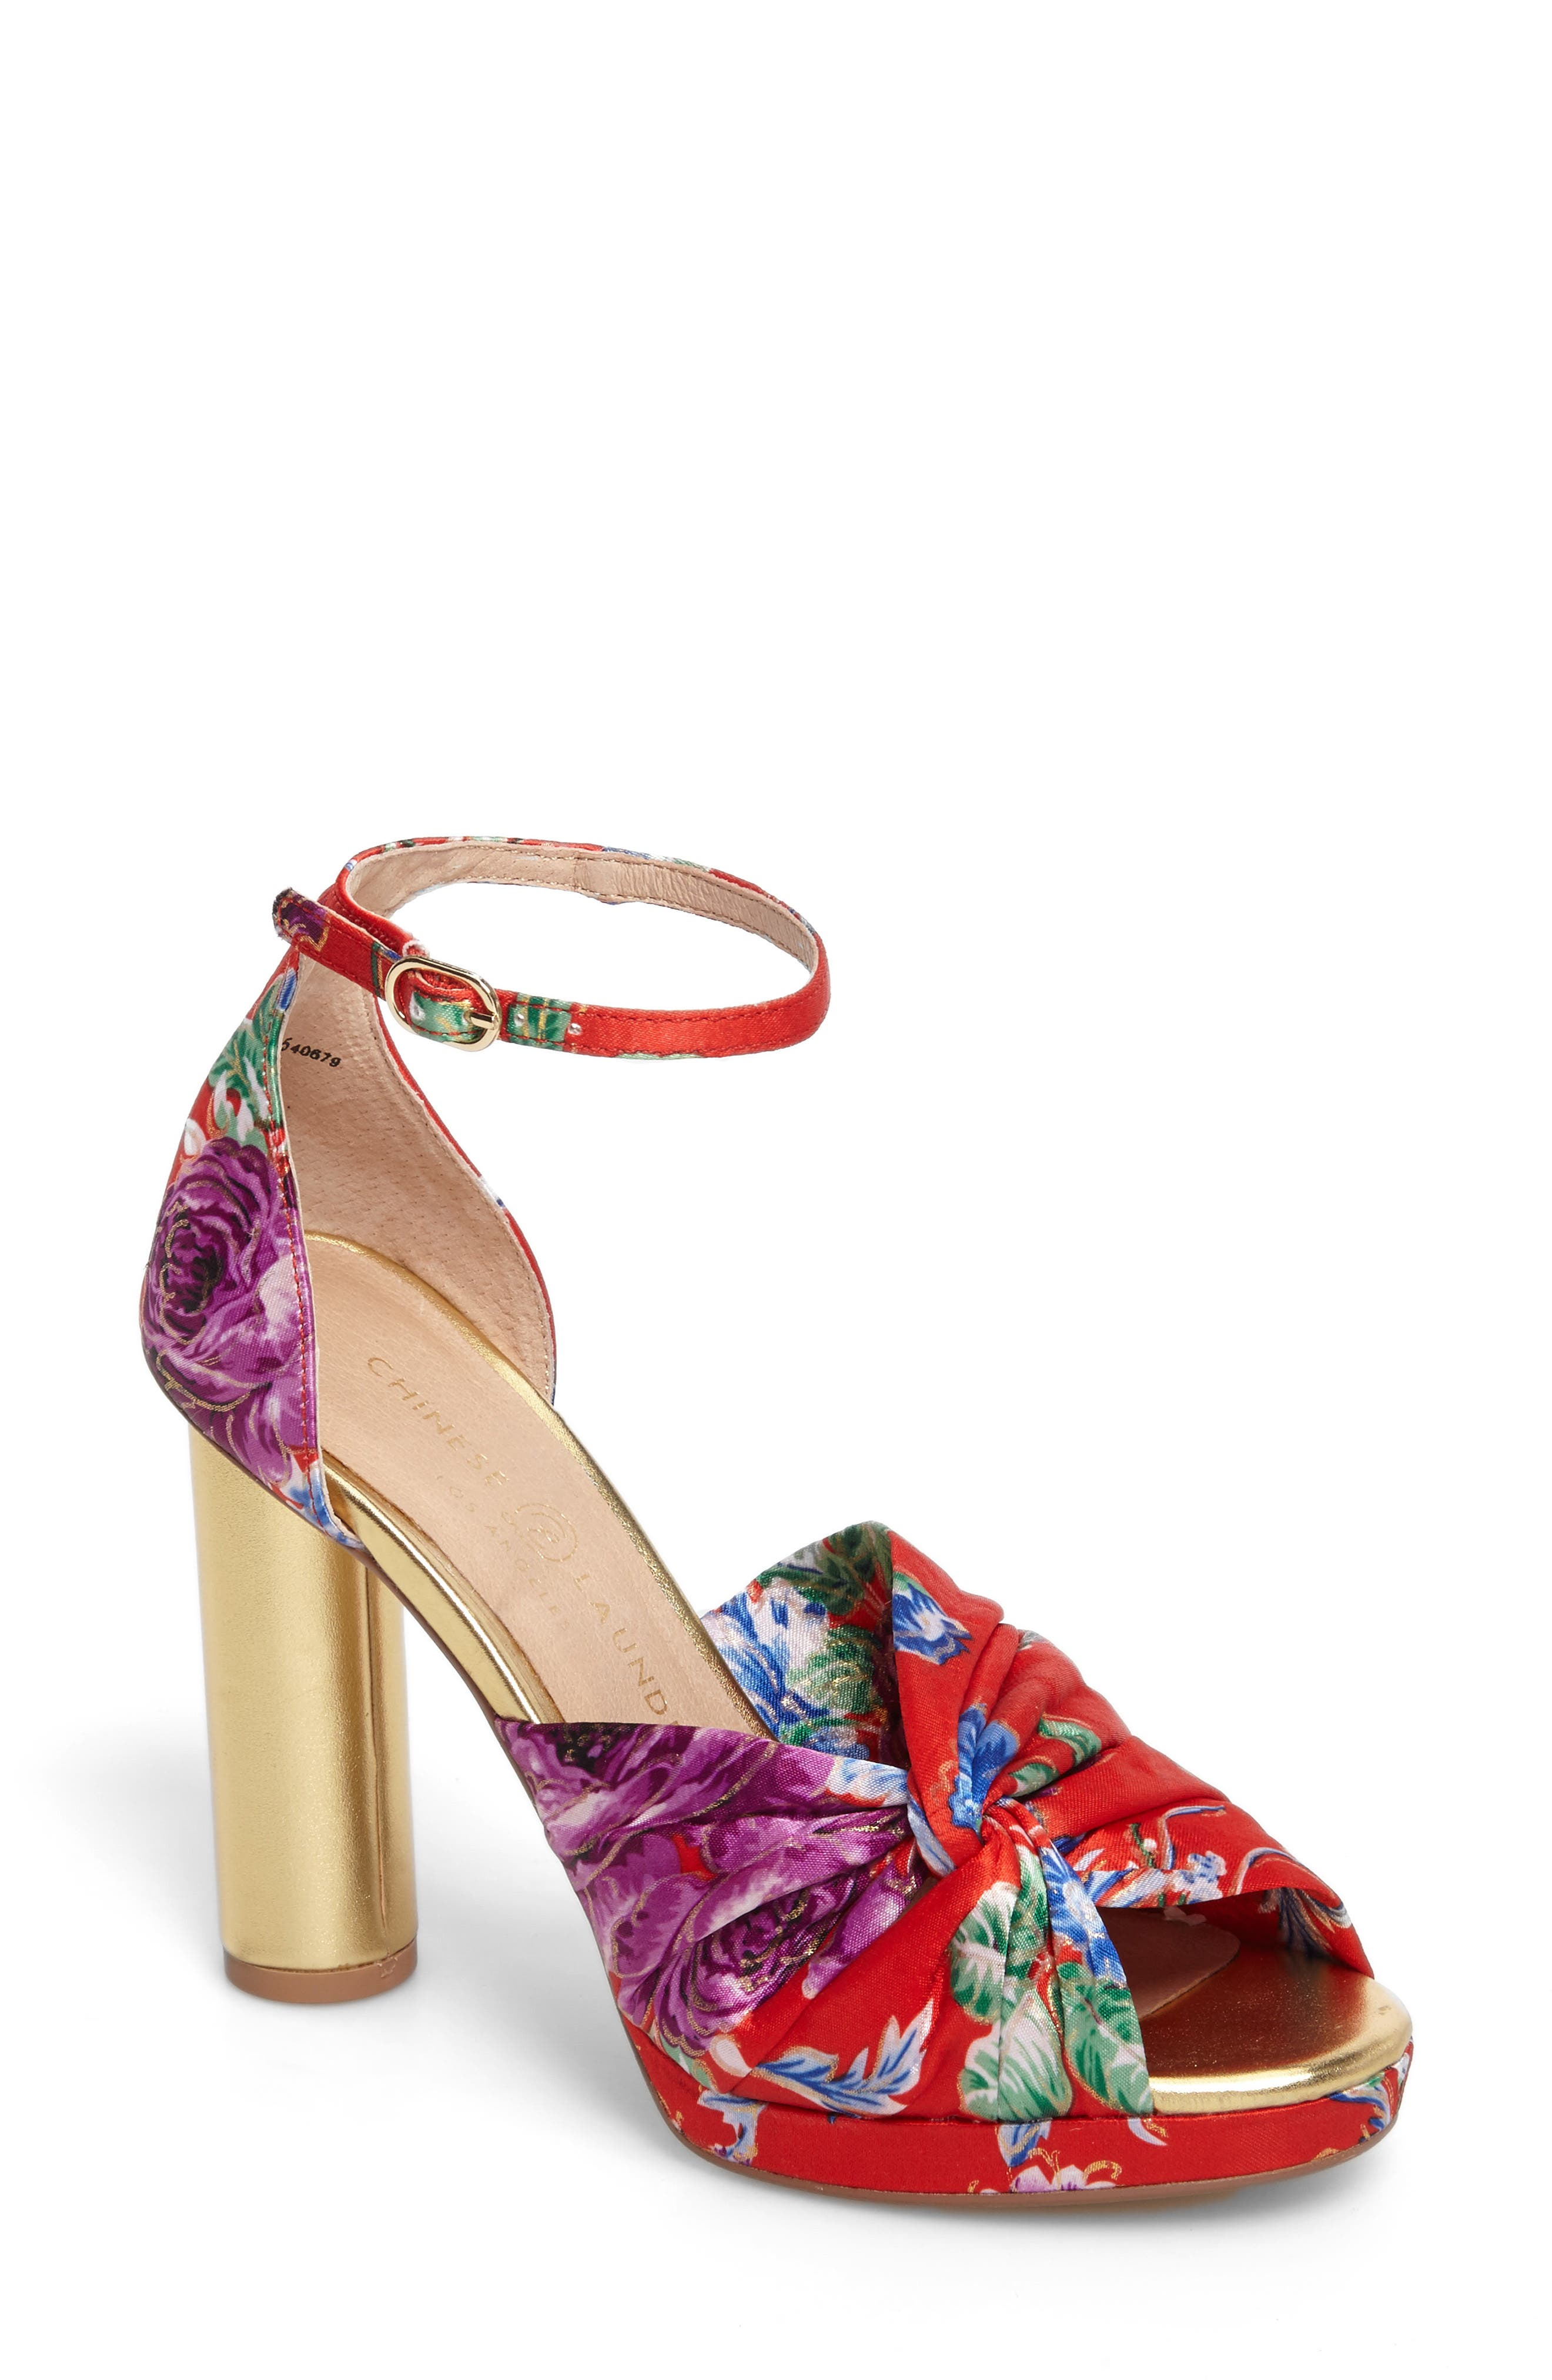 Alternate Image 1 Selected - Chinese Laundry Flory Knotted Sandal (Women)